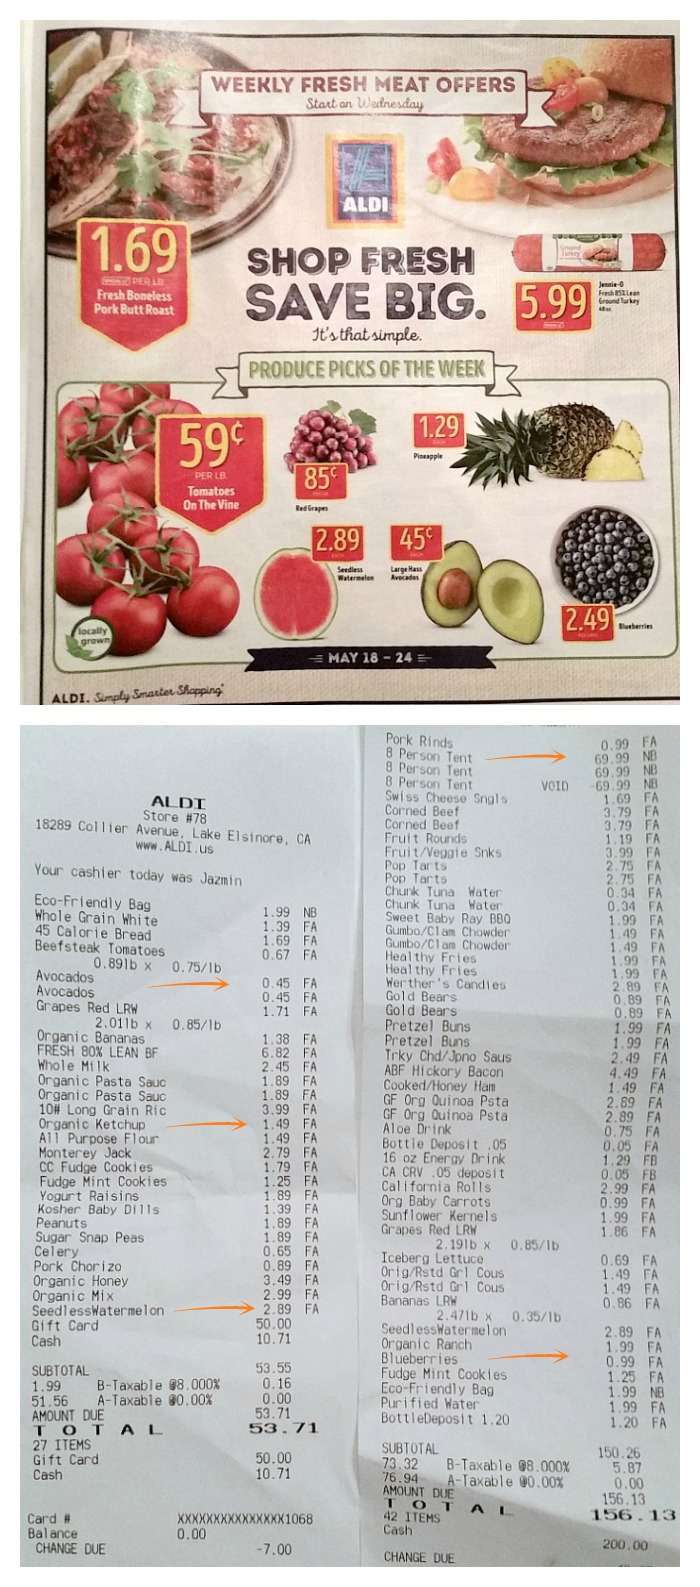 ALDI Receipts